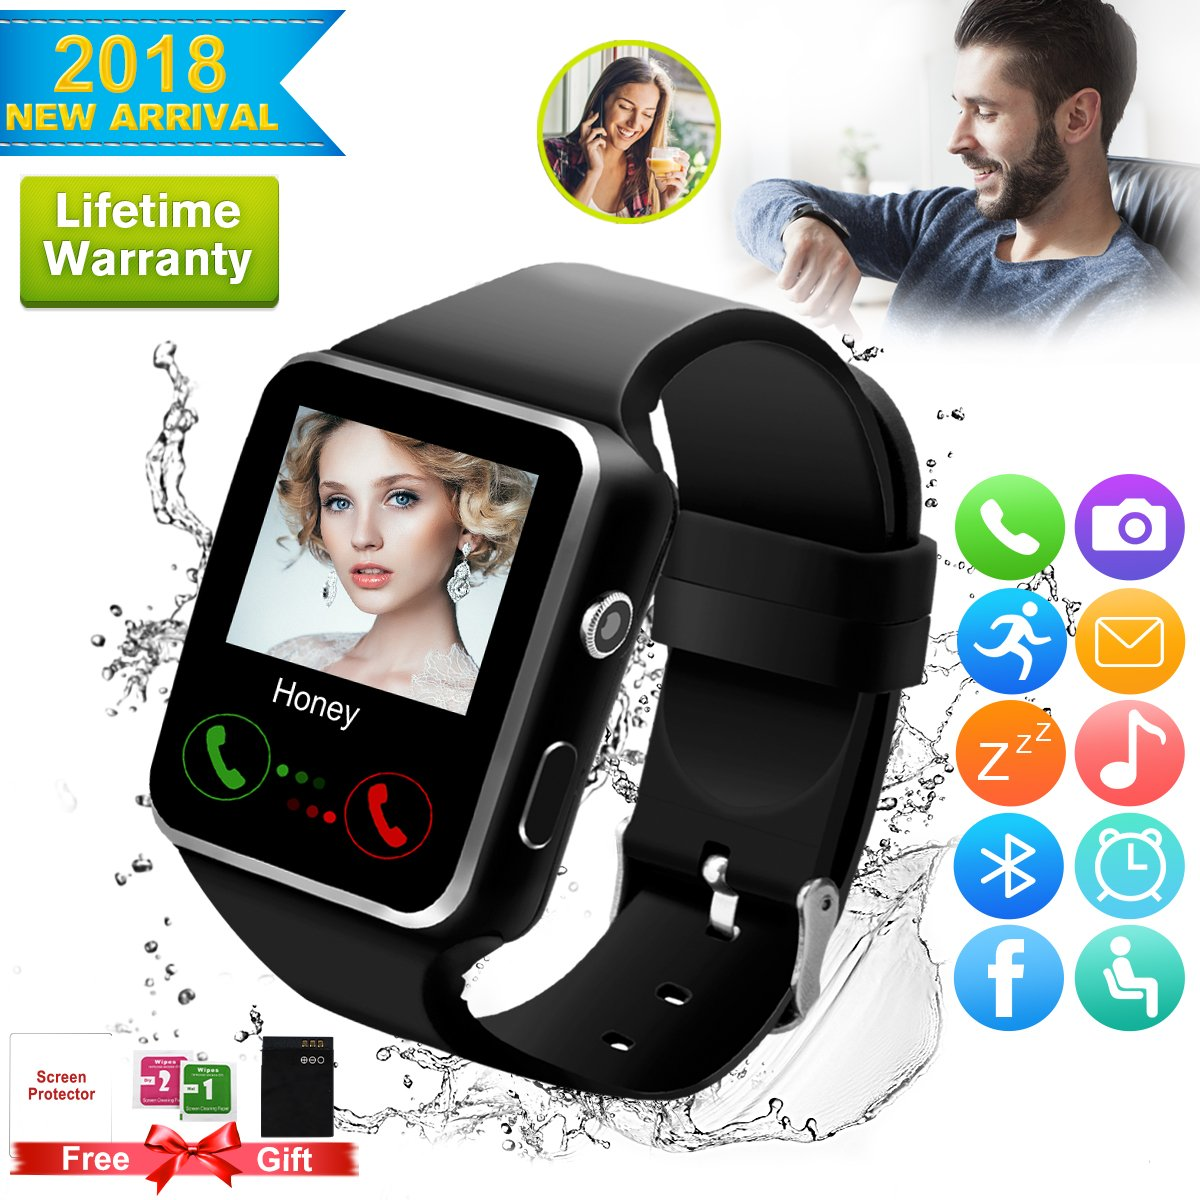 2018 Bluetooth Smart Watch for Andriod phones, iphone Smartwatch with Camera,Waterpfoof Watch Cell Phone ,Smart Wrist Watch Touchscreen for Android Samsung IOS Iphone X 87 6 5 Plus Men Women Youth